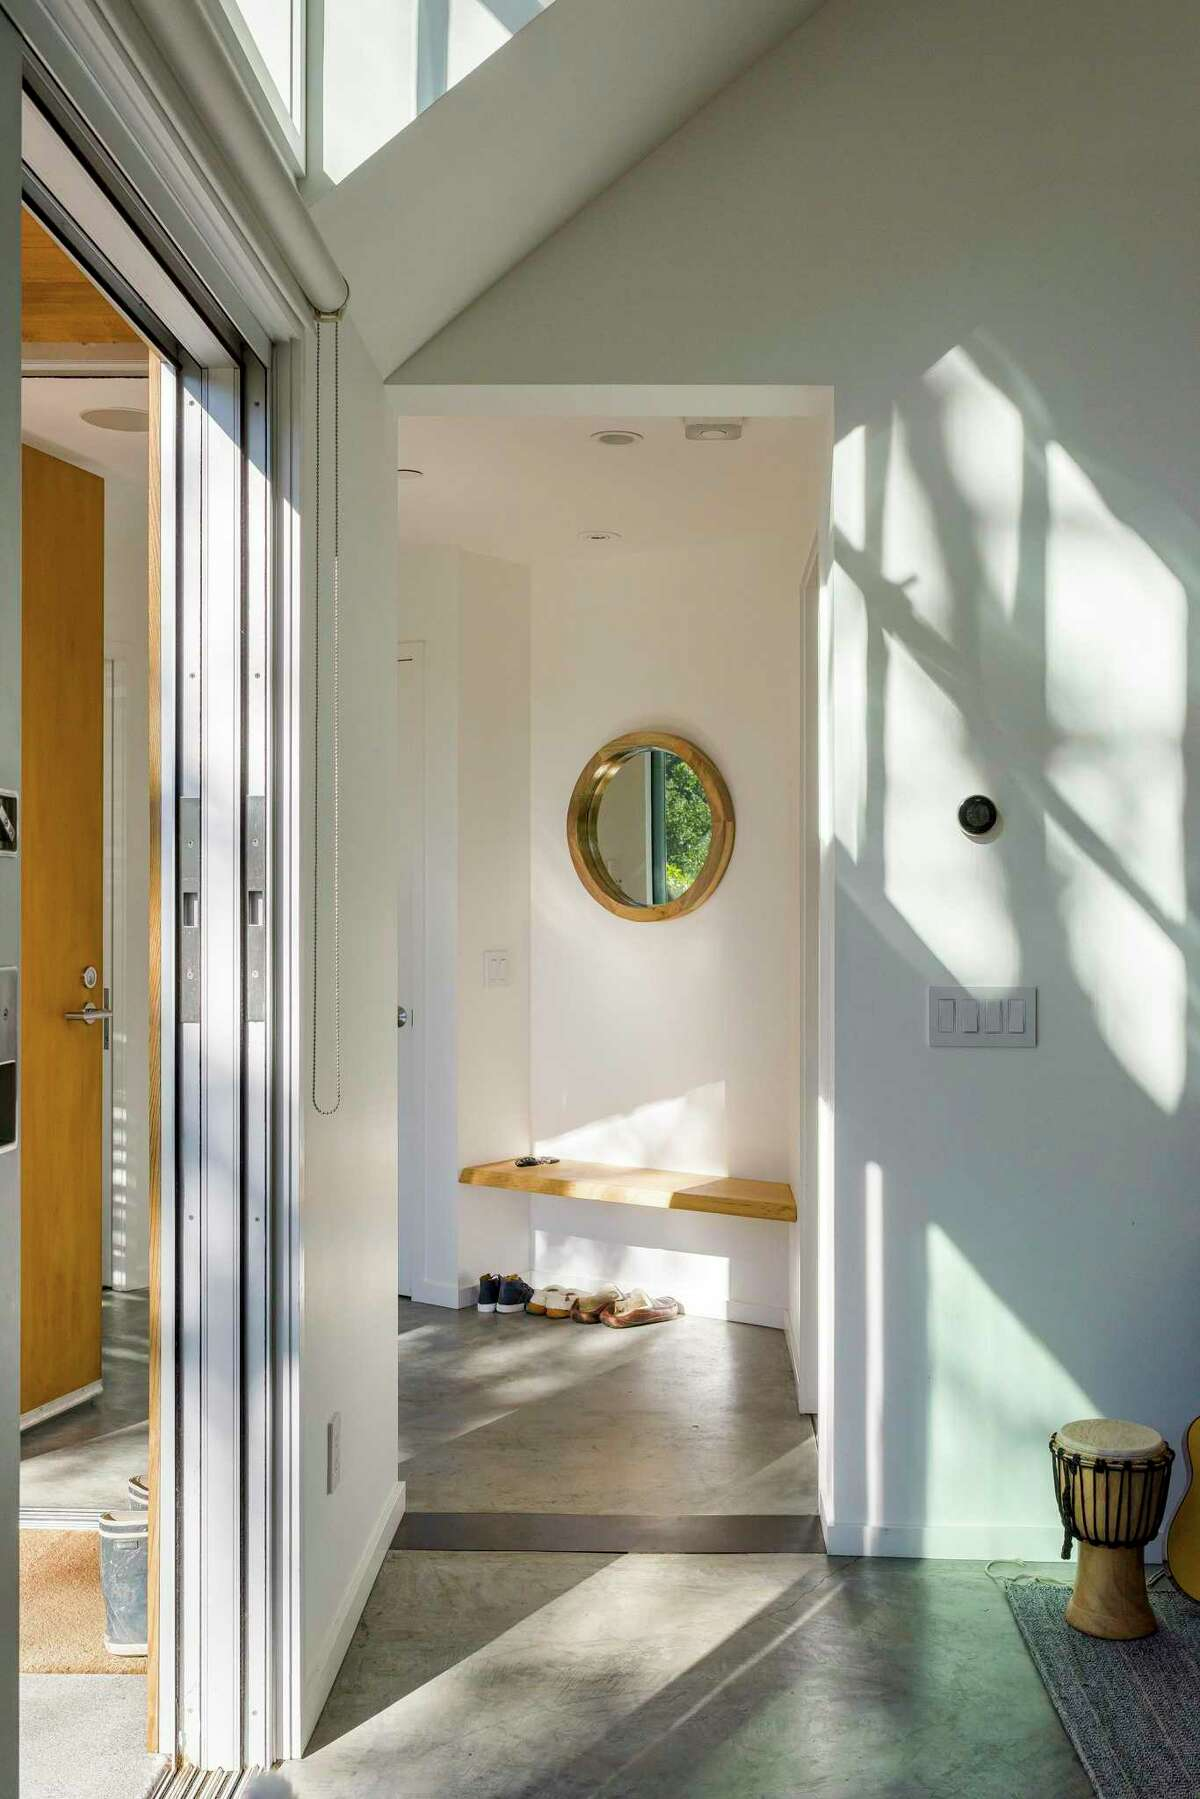 Architect Melanie Turner, director of residential design for Perkins&Will's San Francisco office, installed a built-in bench in the entryway of this Mill Valley home to give residents and guests a place to take off and store their shoes before entering further into the home.